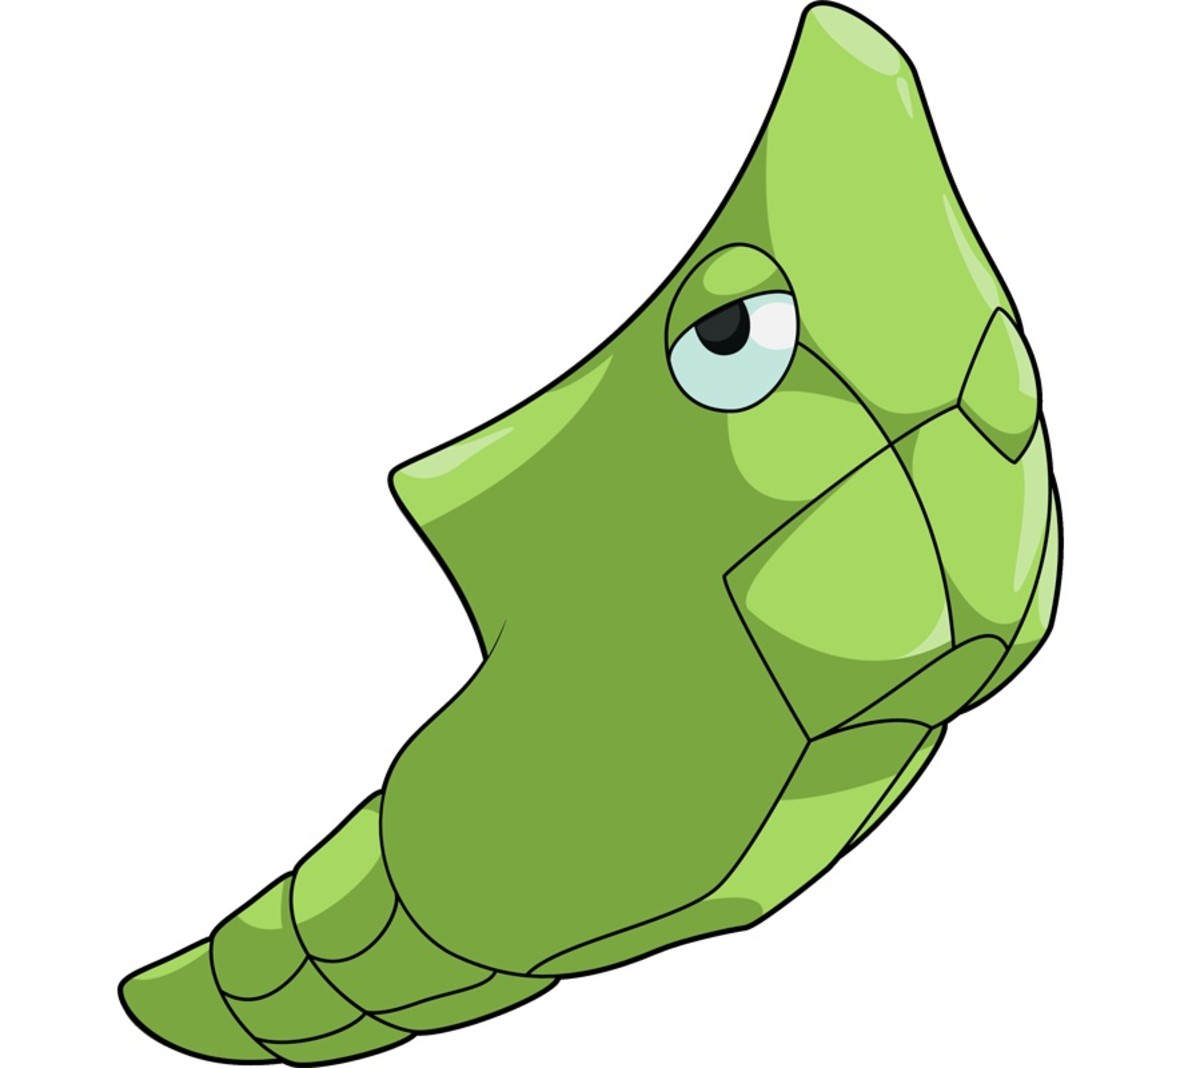 Nicknames for Metapod